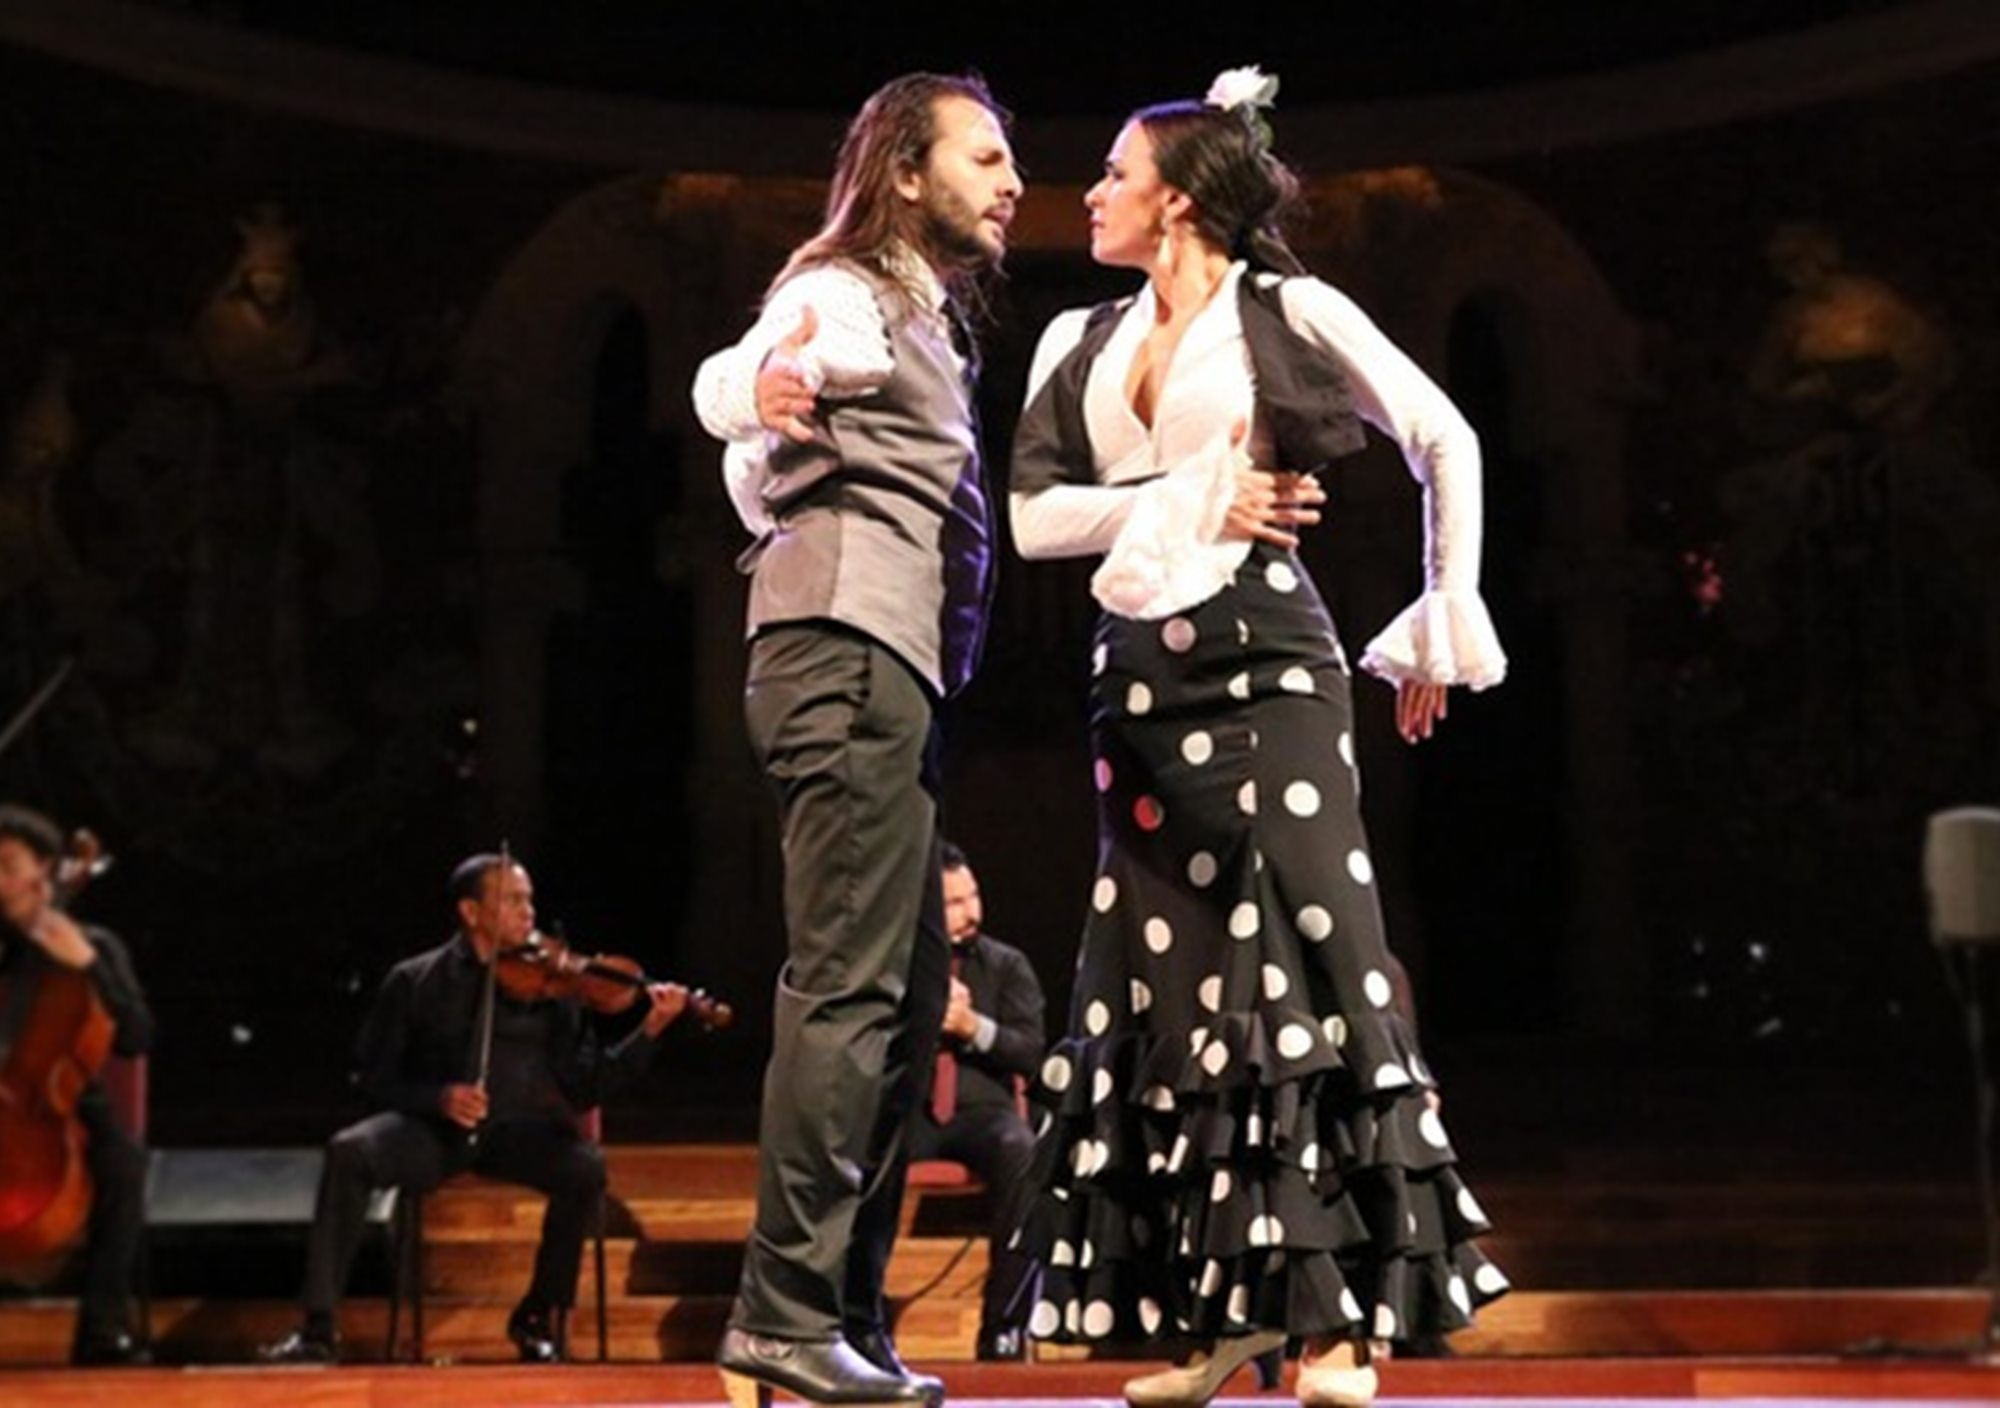 Opera & Flamenco show in Teatre Poliorama barcelona tickets visits get purchase book online